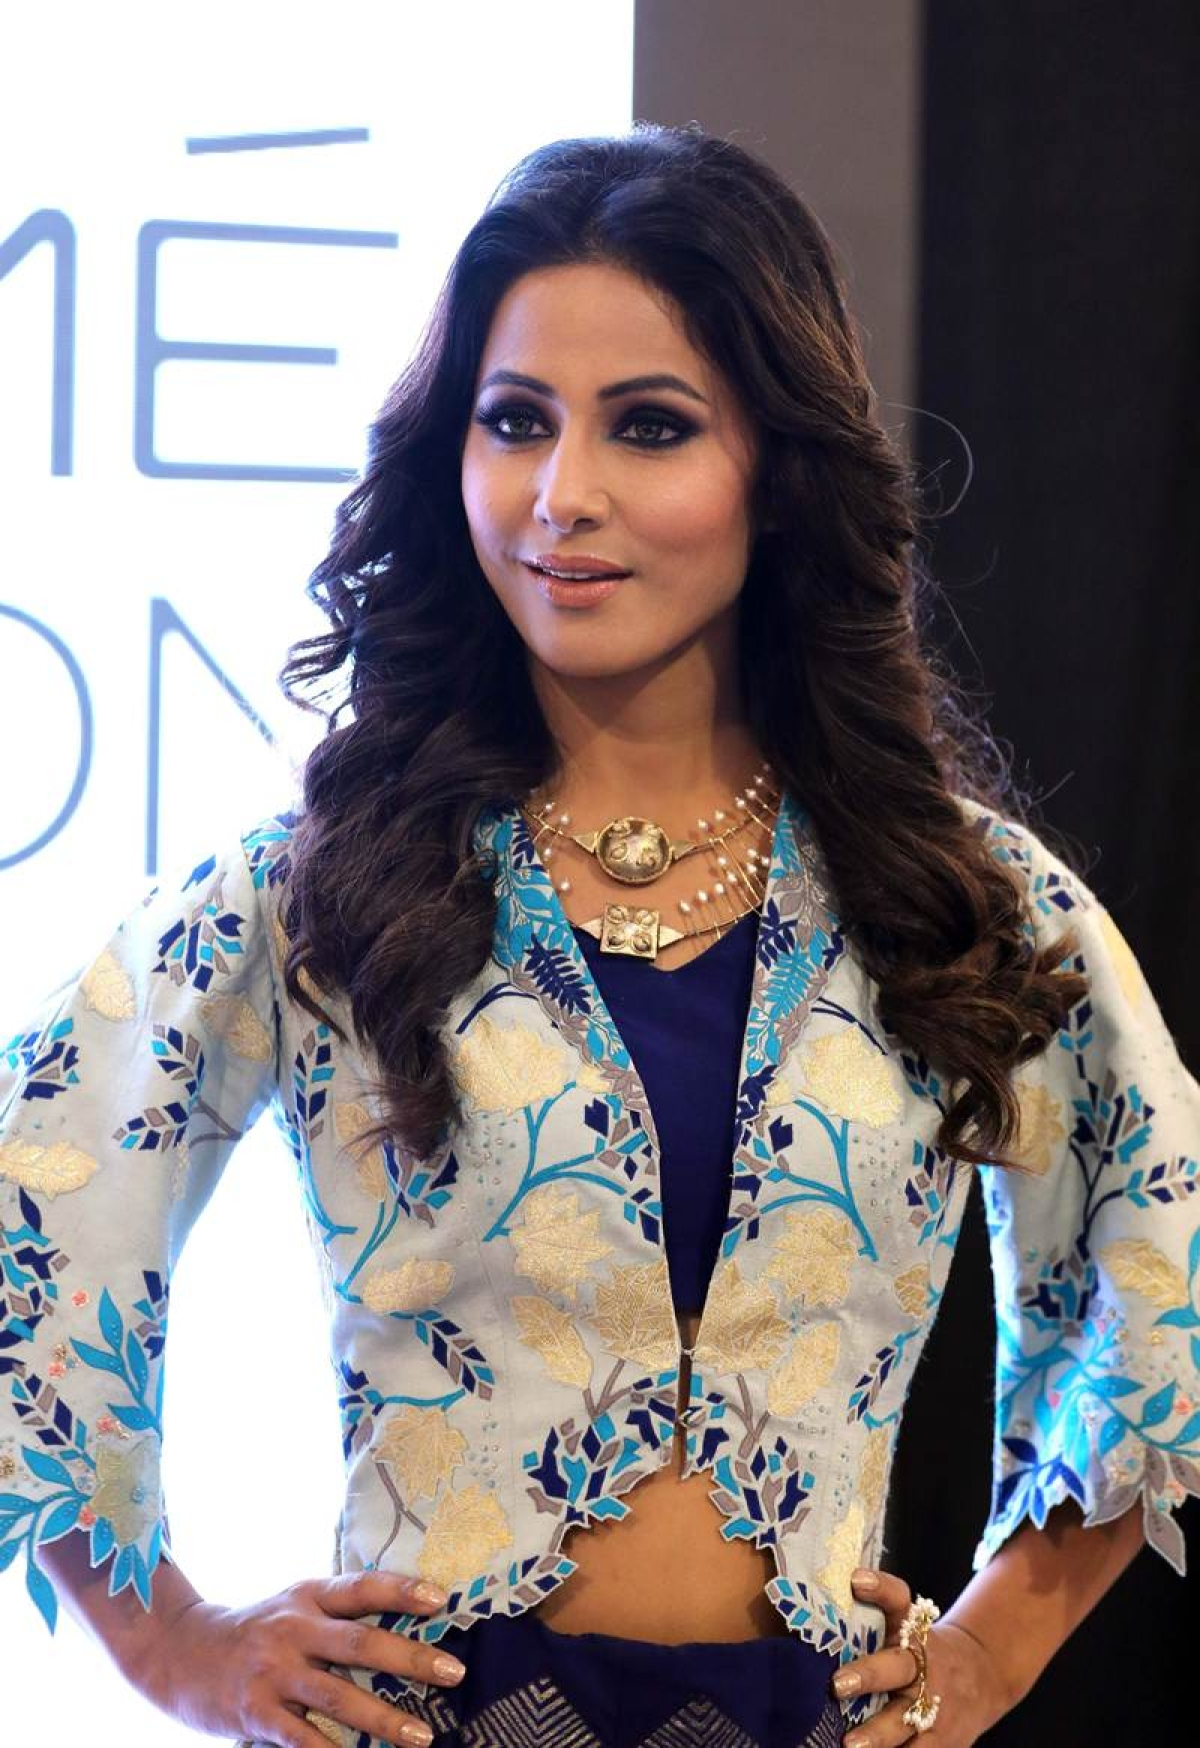 Hina Khan says breaking 'bahu' image was not easy